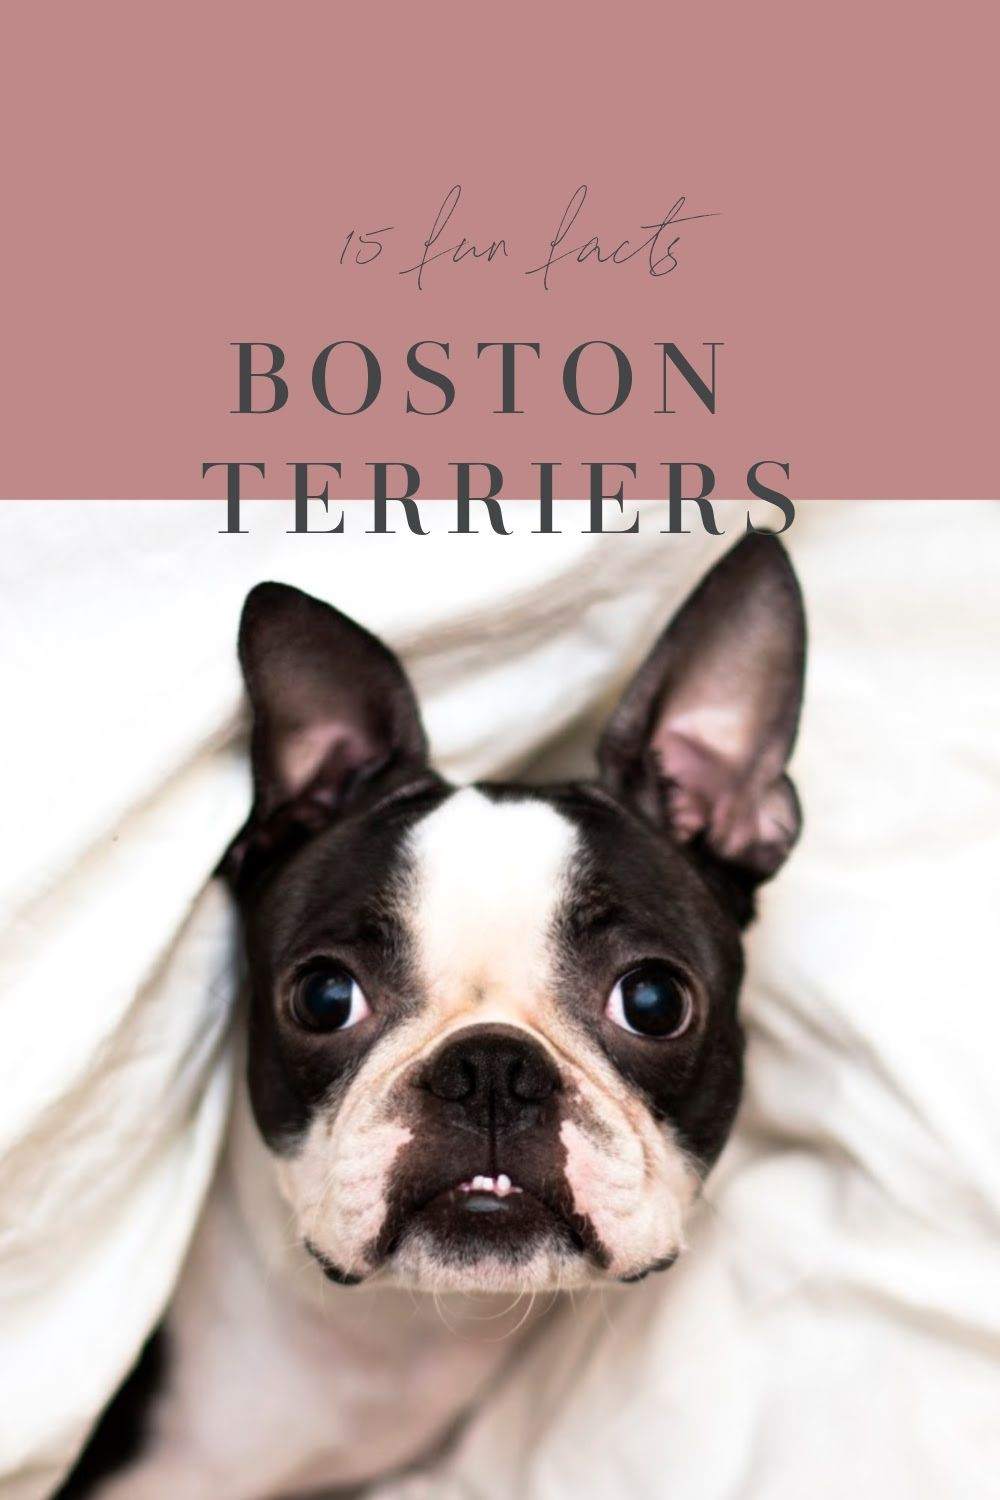 15 Interesting Facts About Boston Terriers In 2020 Boston Terrier Terrier Boston Terrier Dog